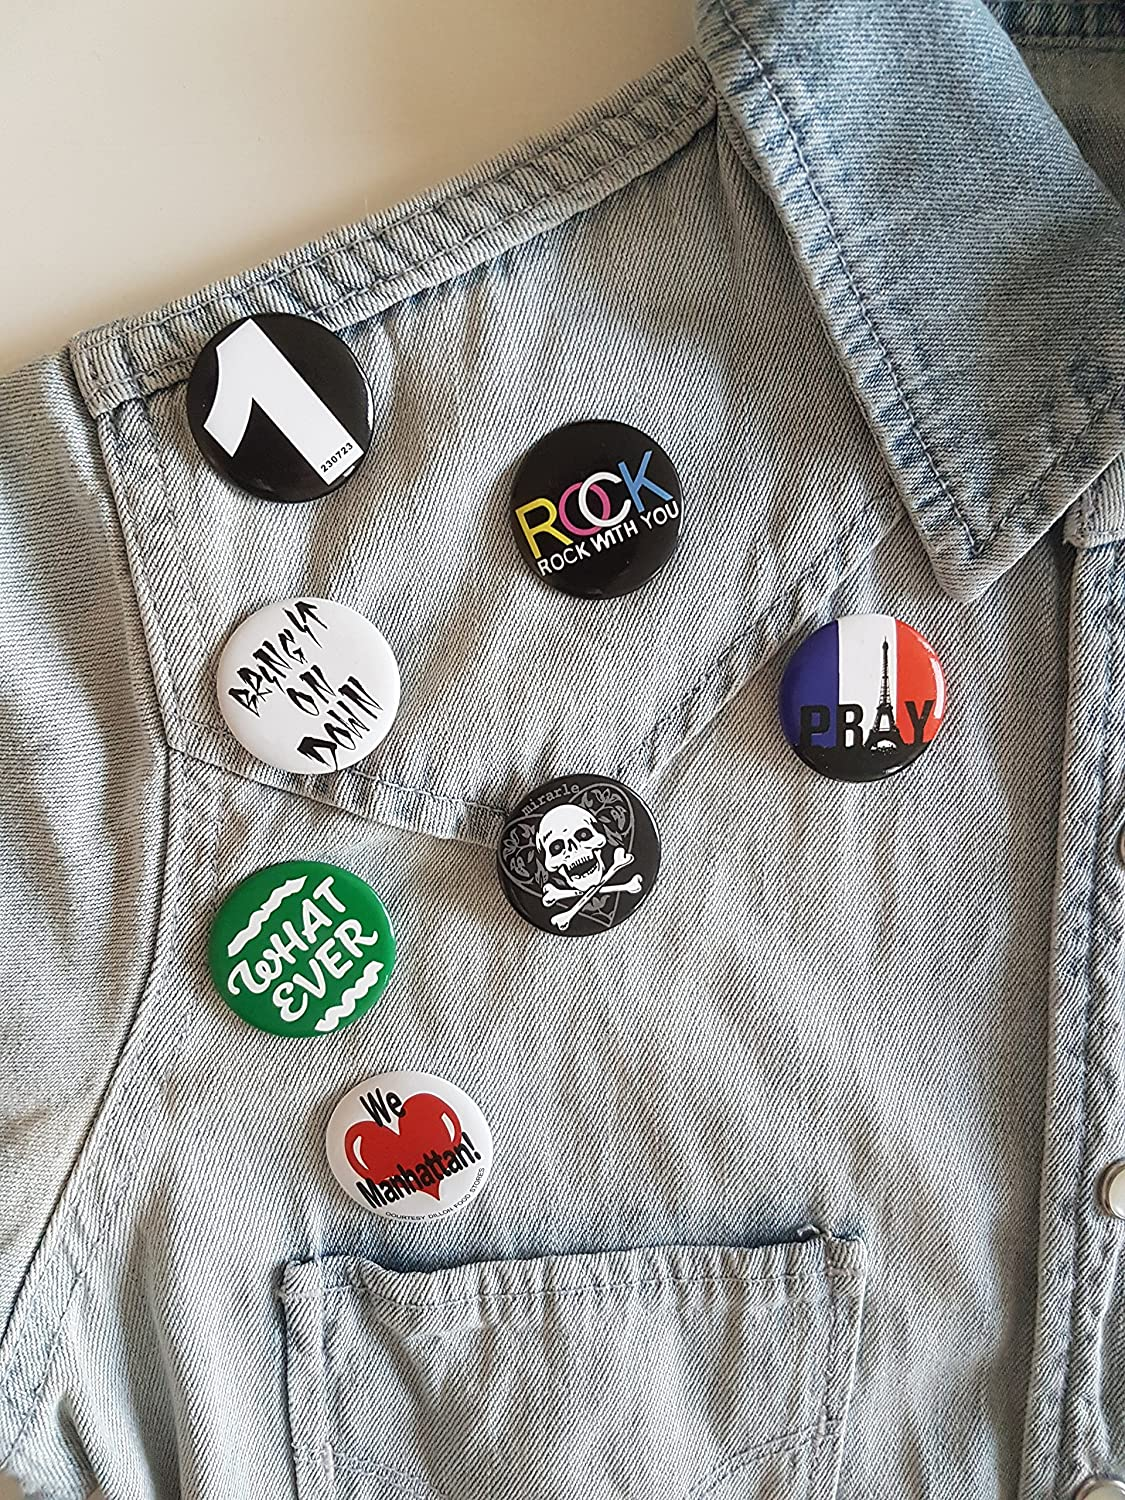 Huge Wholesale Set of 30Pc Cool Buttons Pins Badges 80s Punk Rock Hardcore Skull Buttons pins Slogans Sayings pin,Lapel pin for Clothes//Bags//Backpack//Hats//Jeans and More.